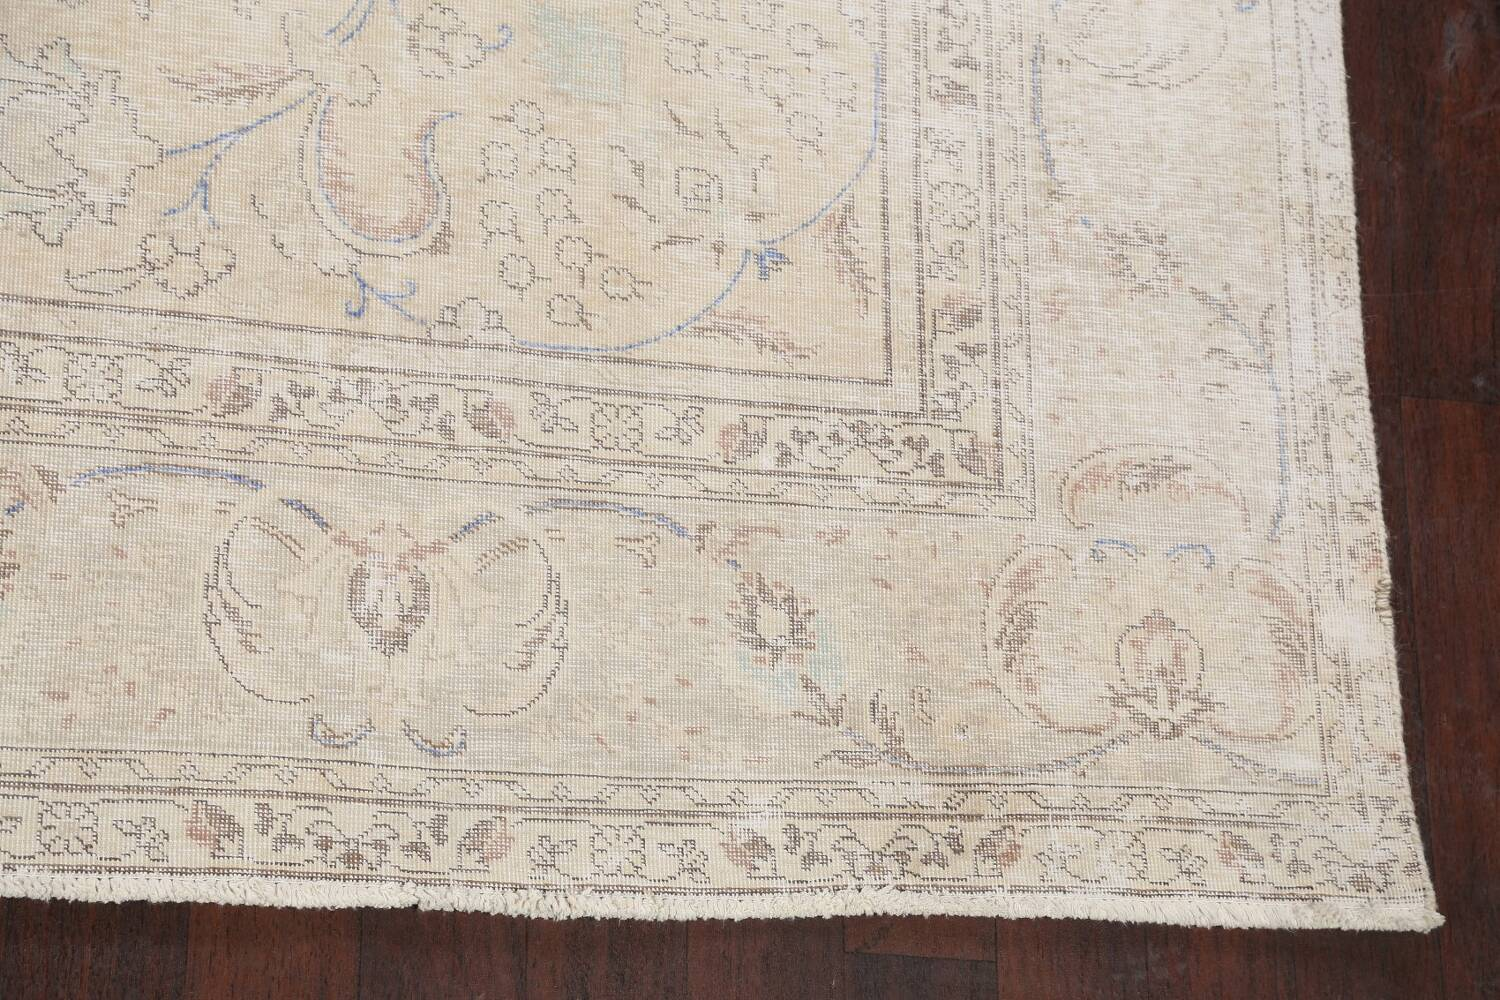 Antique Distressed Floral Tabriz Persian Area Rug 9x11 image 5